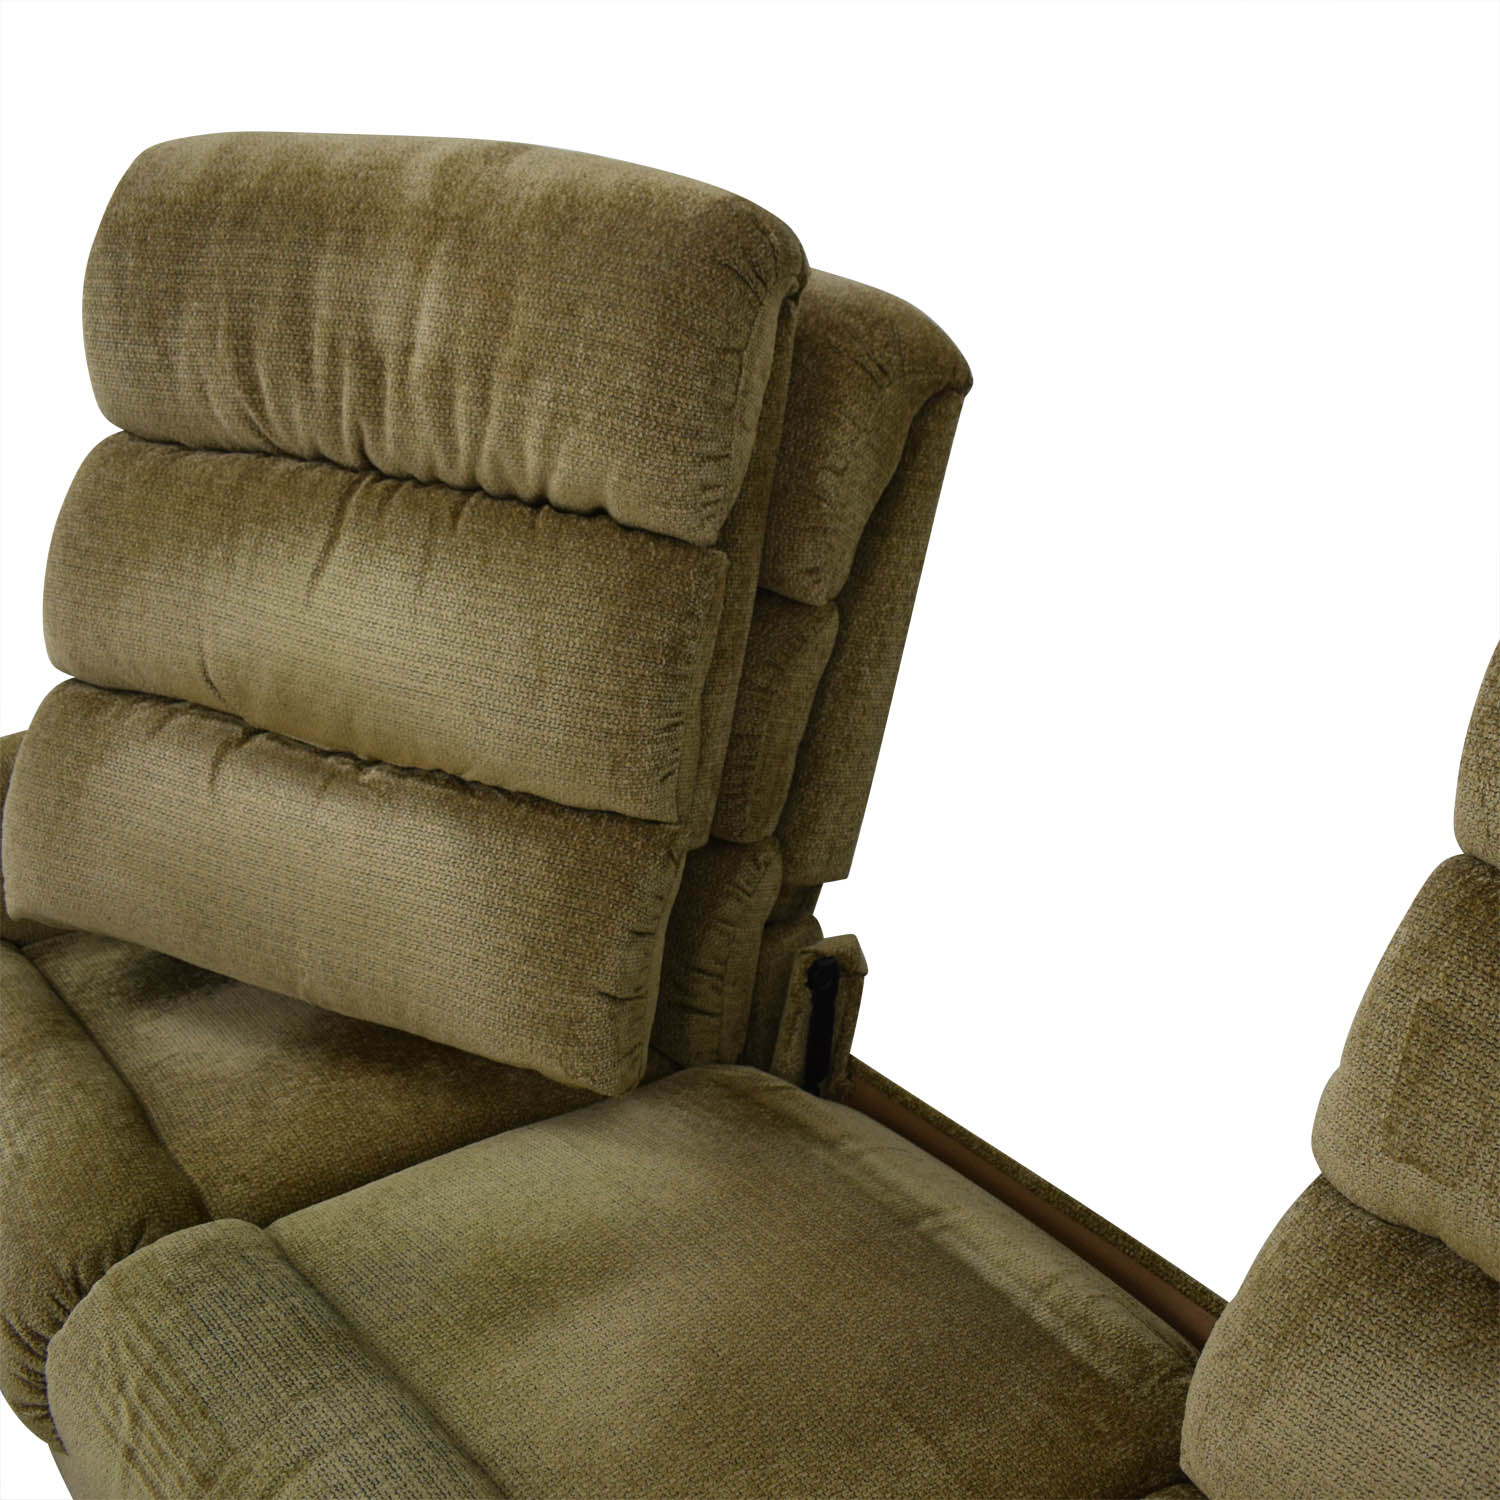 La-Z-Boy La-Z-Boy Tan Reclining Three-Cushion Sofa dimensions